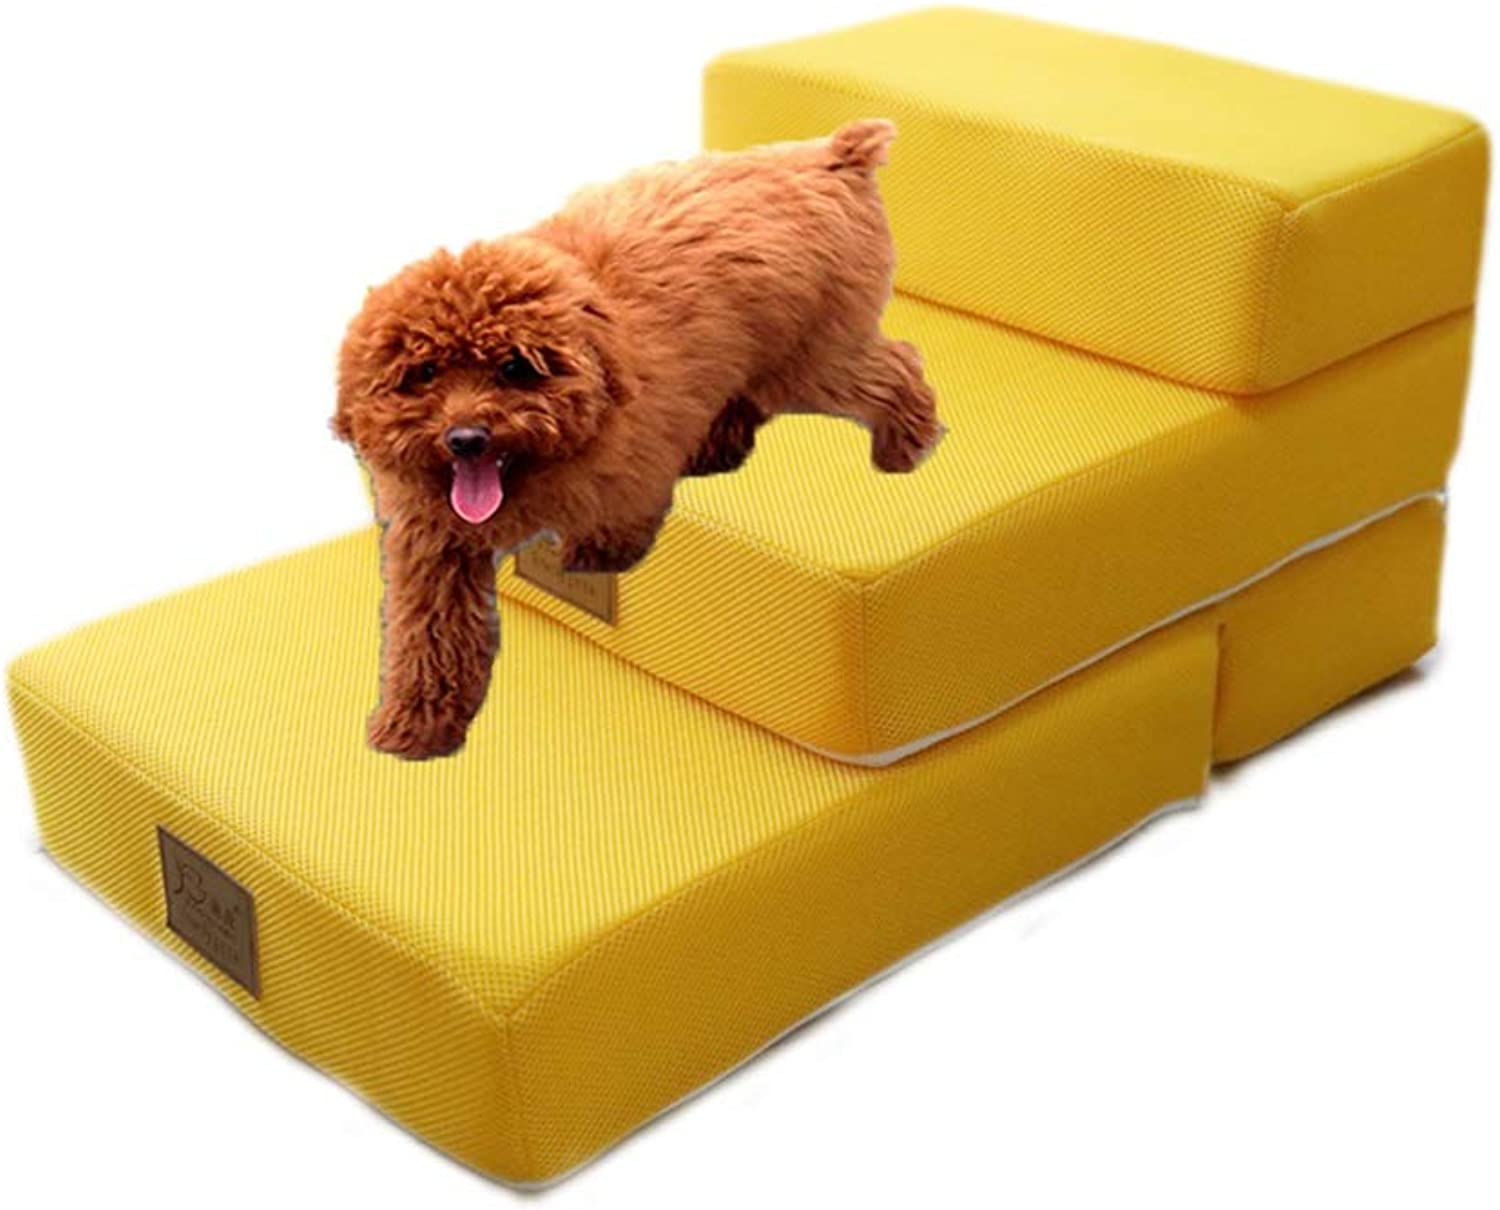 Pet Stairs Yellow Foldable  Cozy Dog Bed Ladder with Breathable Mesh Detachable Cover for Small Animal (Size   3STEP)